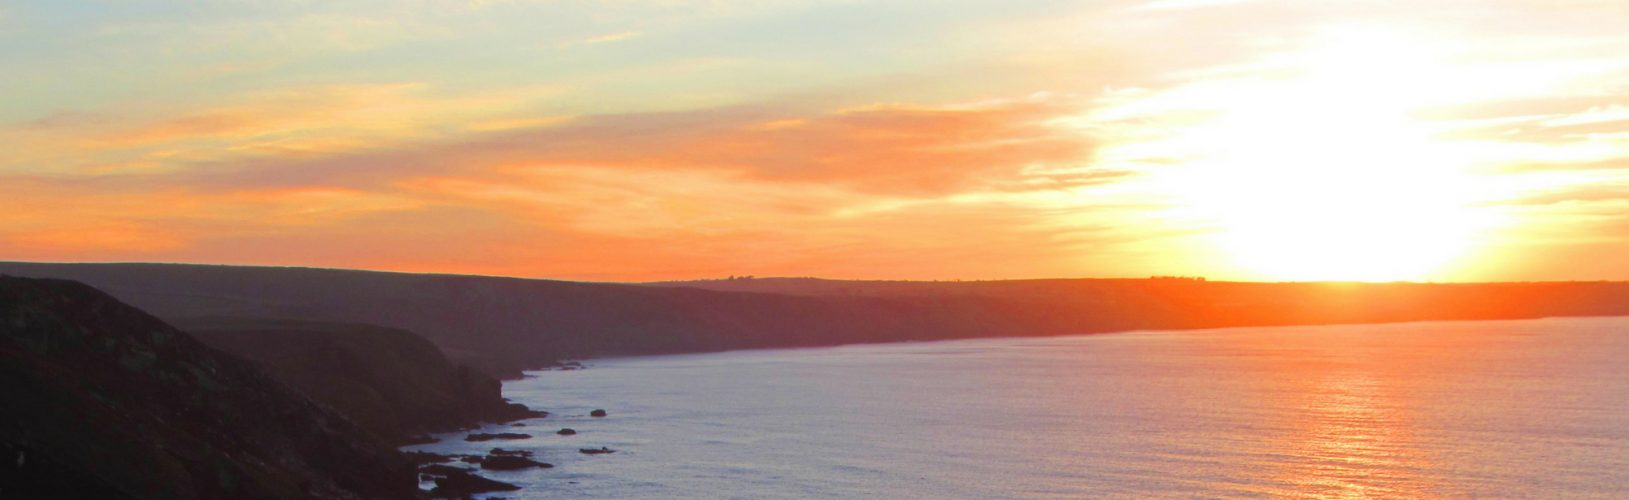 sunset cornwall new year yoga retreat cornwall